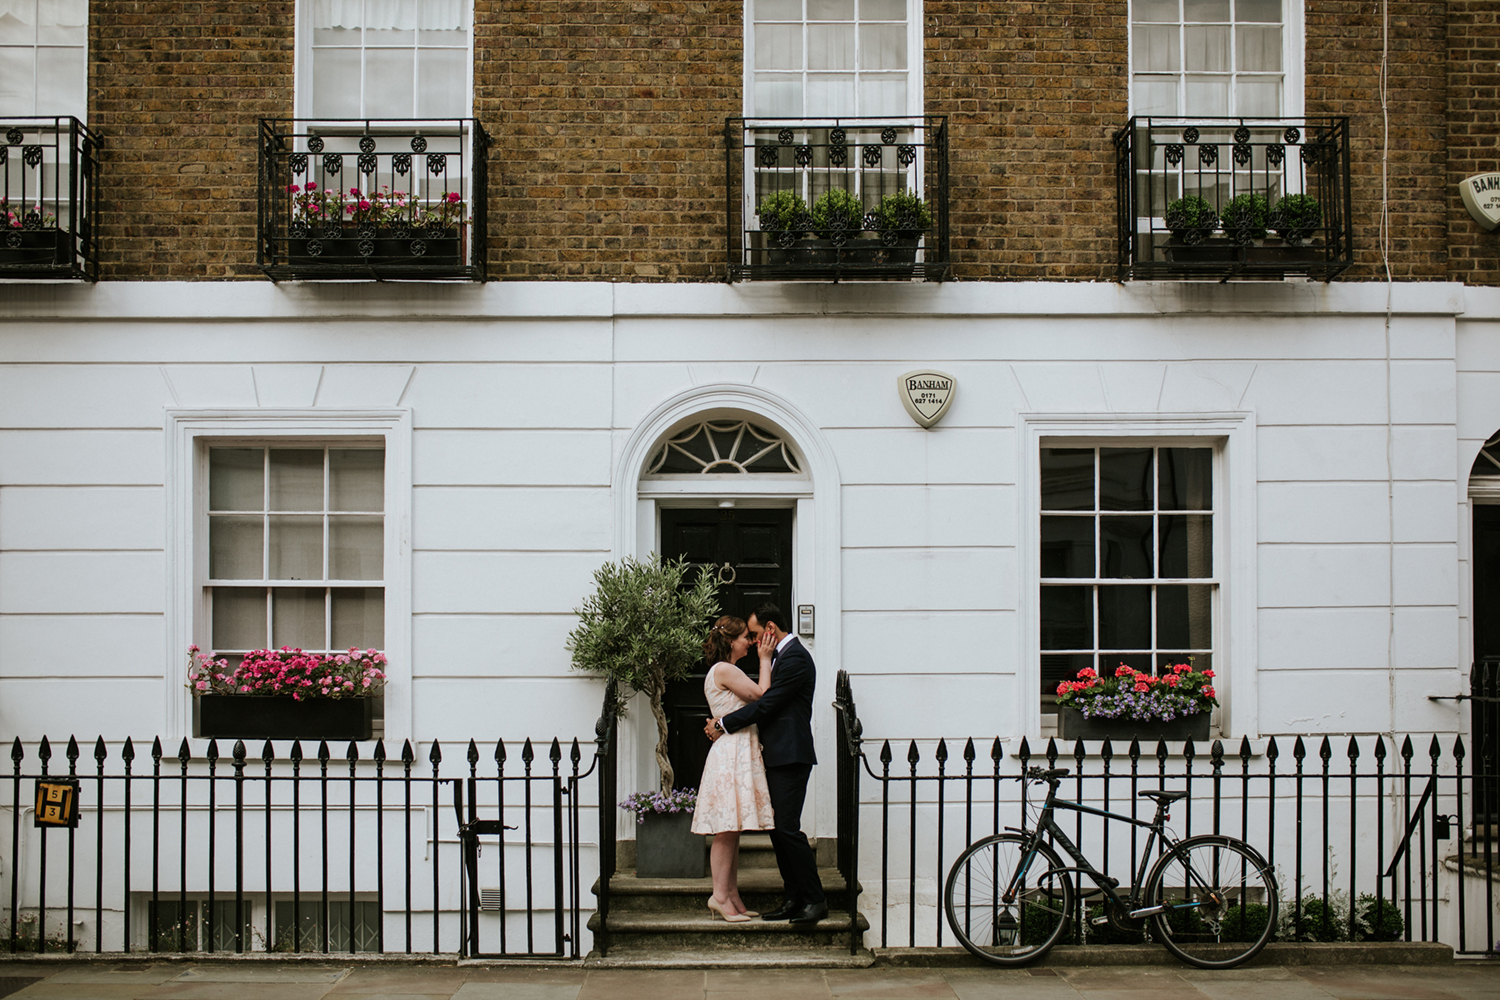 Couple kissing in front of a traditional London terrace house